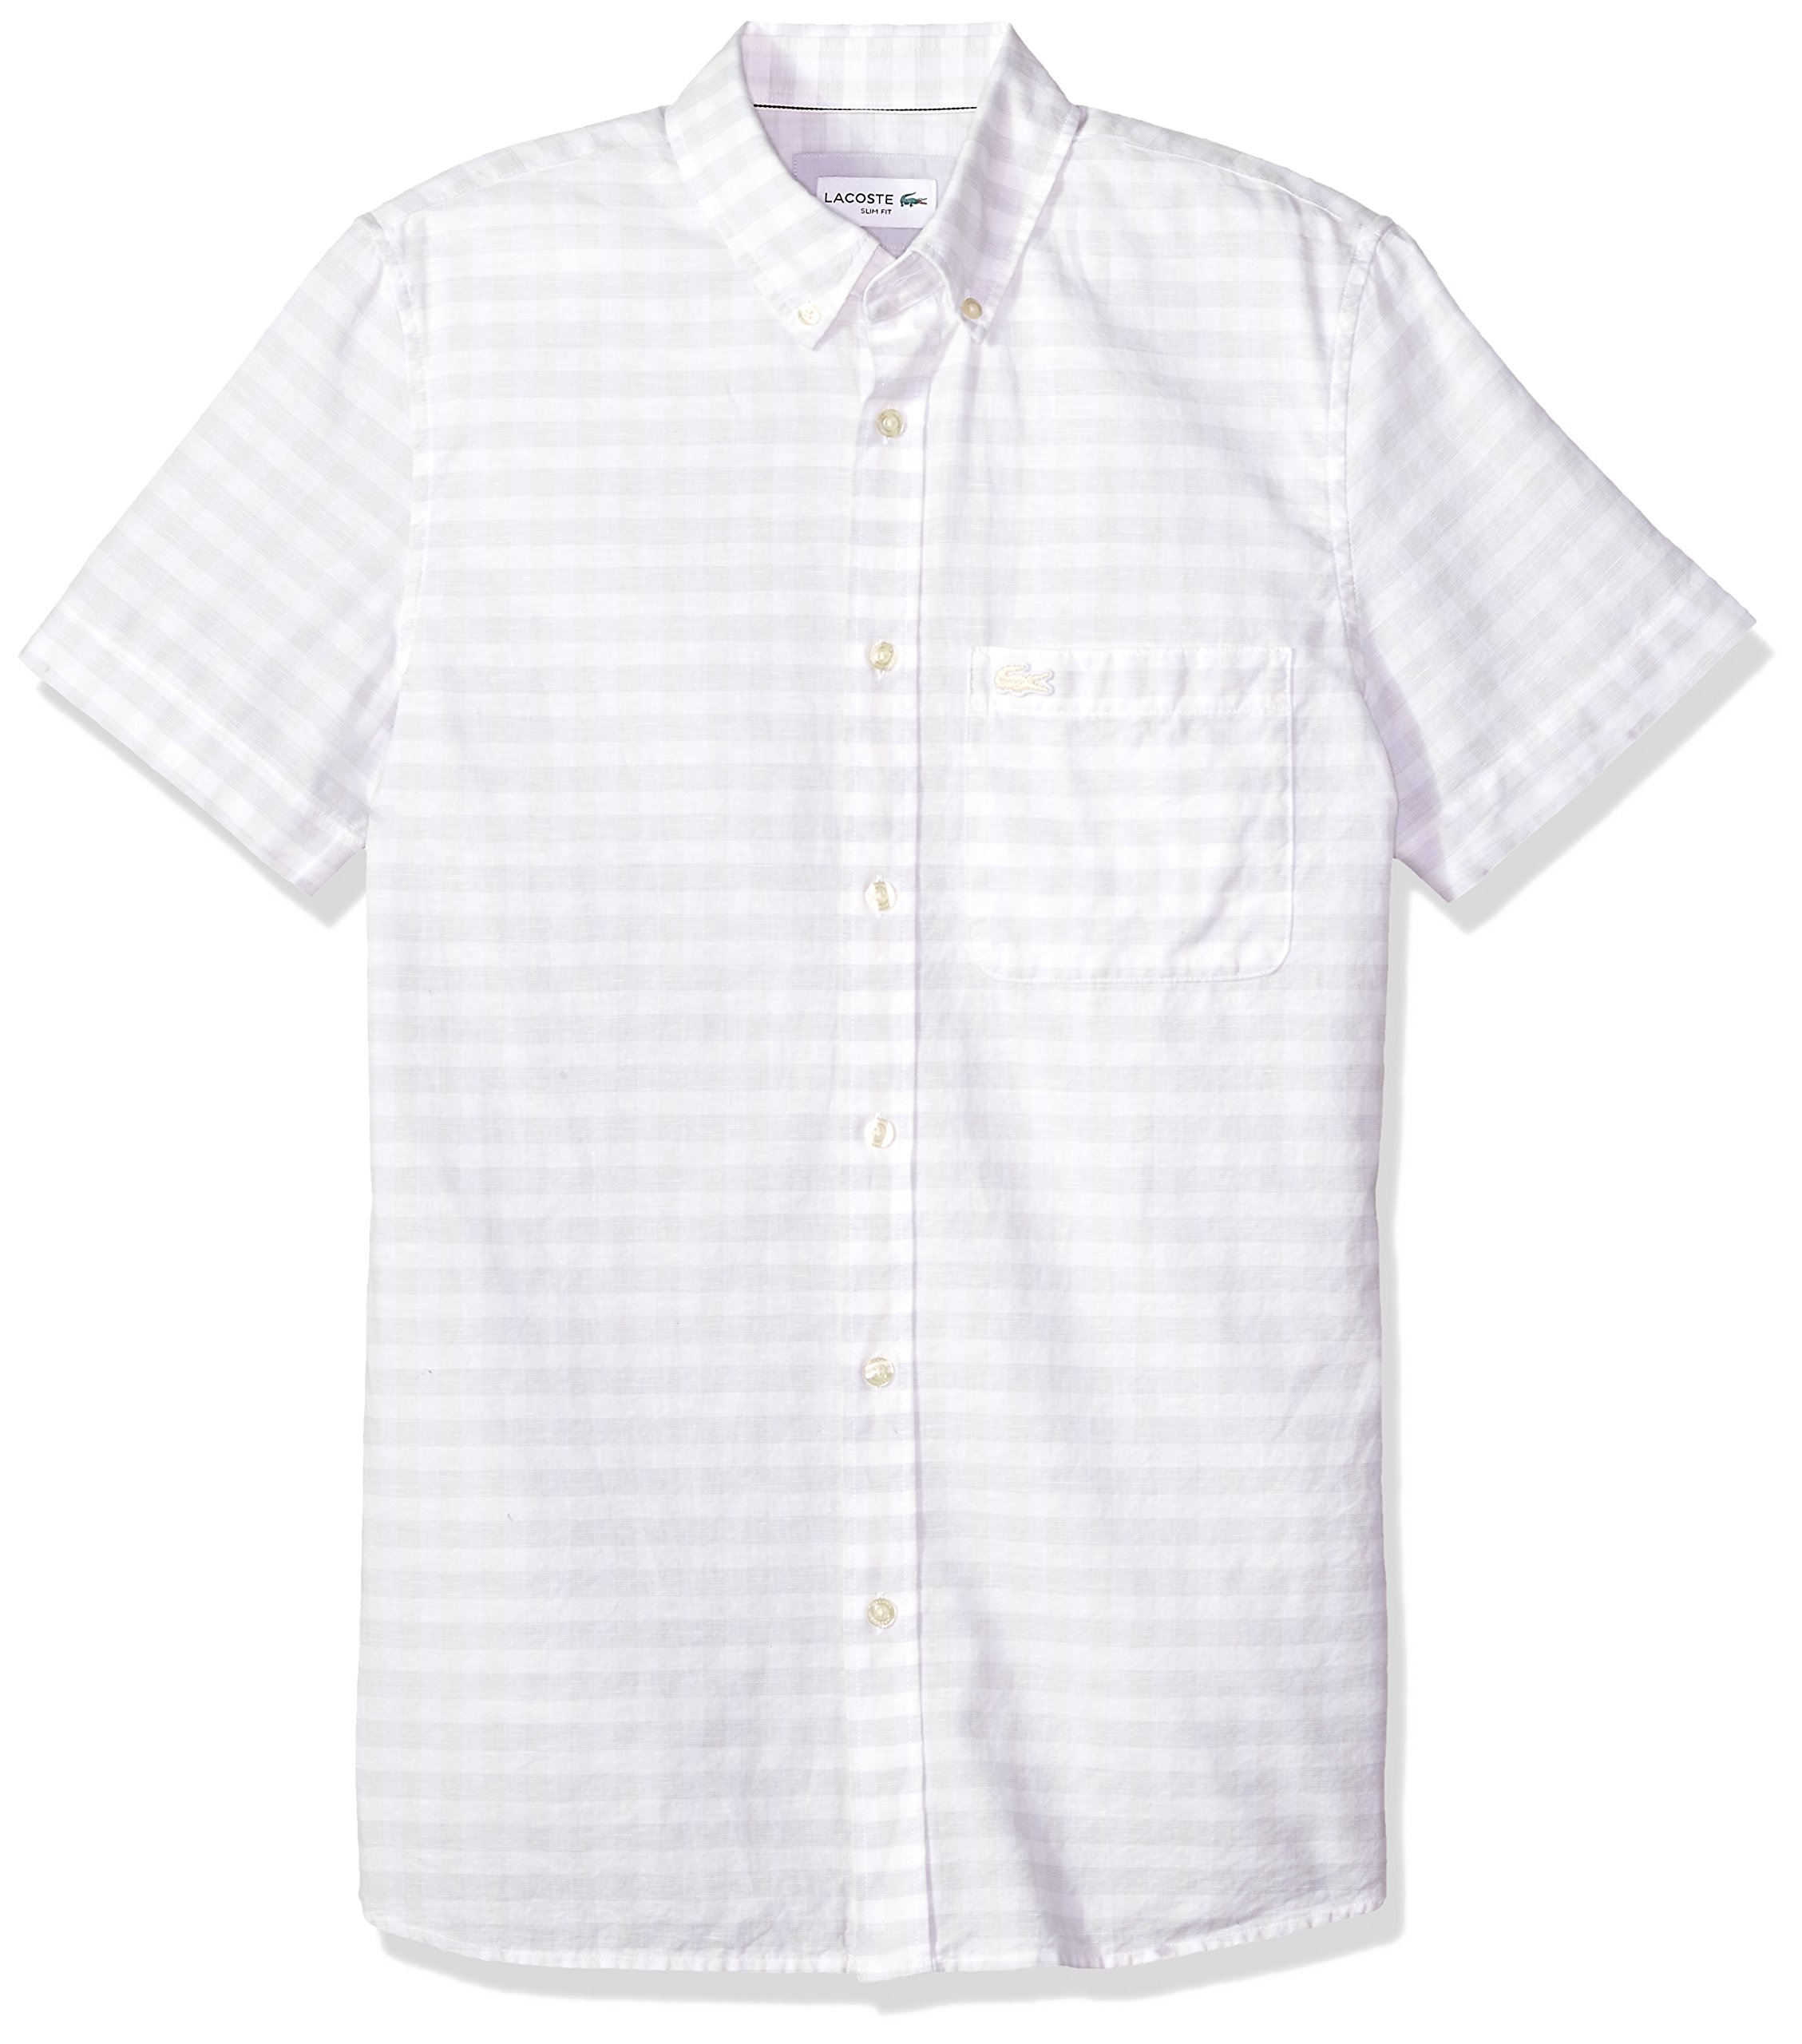 Lacoste Men's Short Sleeve Cotten/Linen Checked Button Down Collar Slim Woven Shirt, Ch5008, French Vanilla Cream, 44